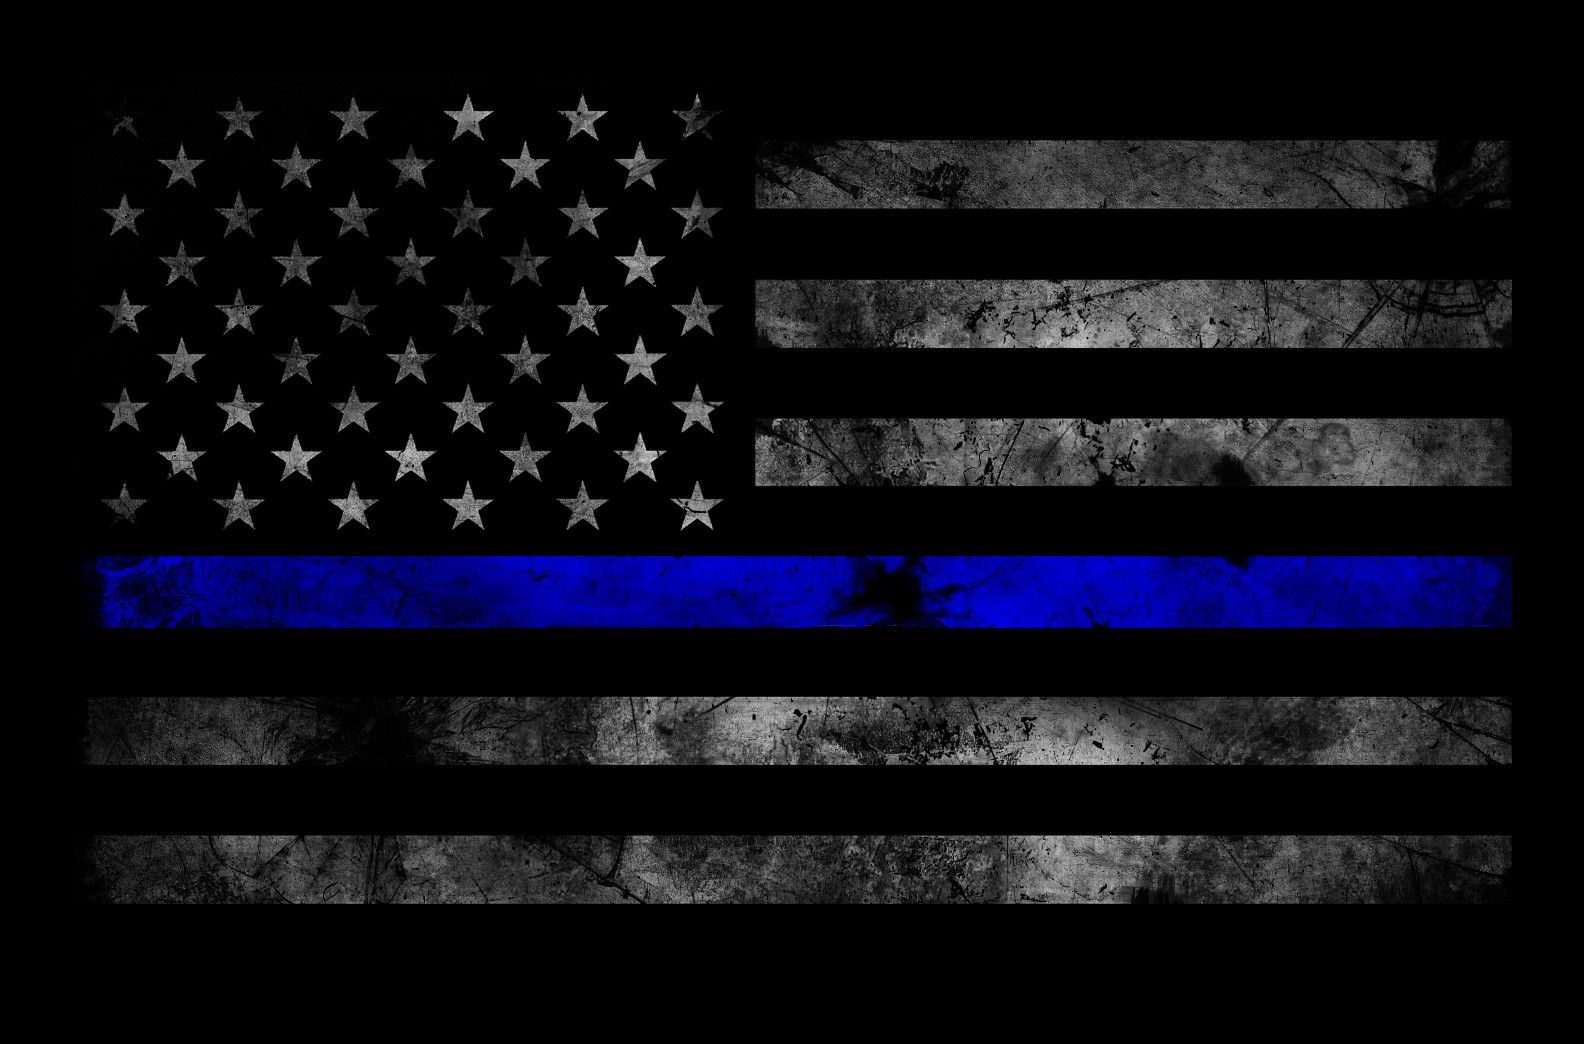 Top Police Thin Blue Line Wallpaper Wallpapers